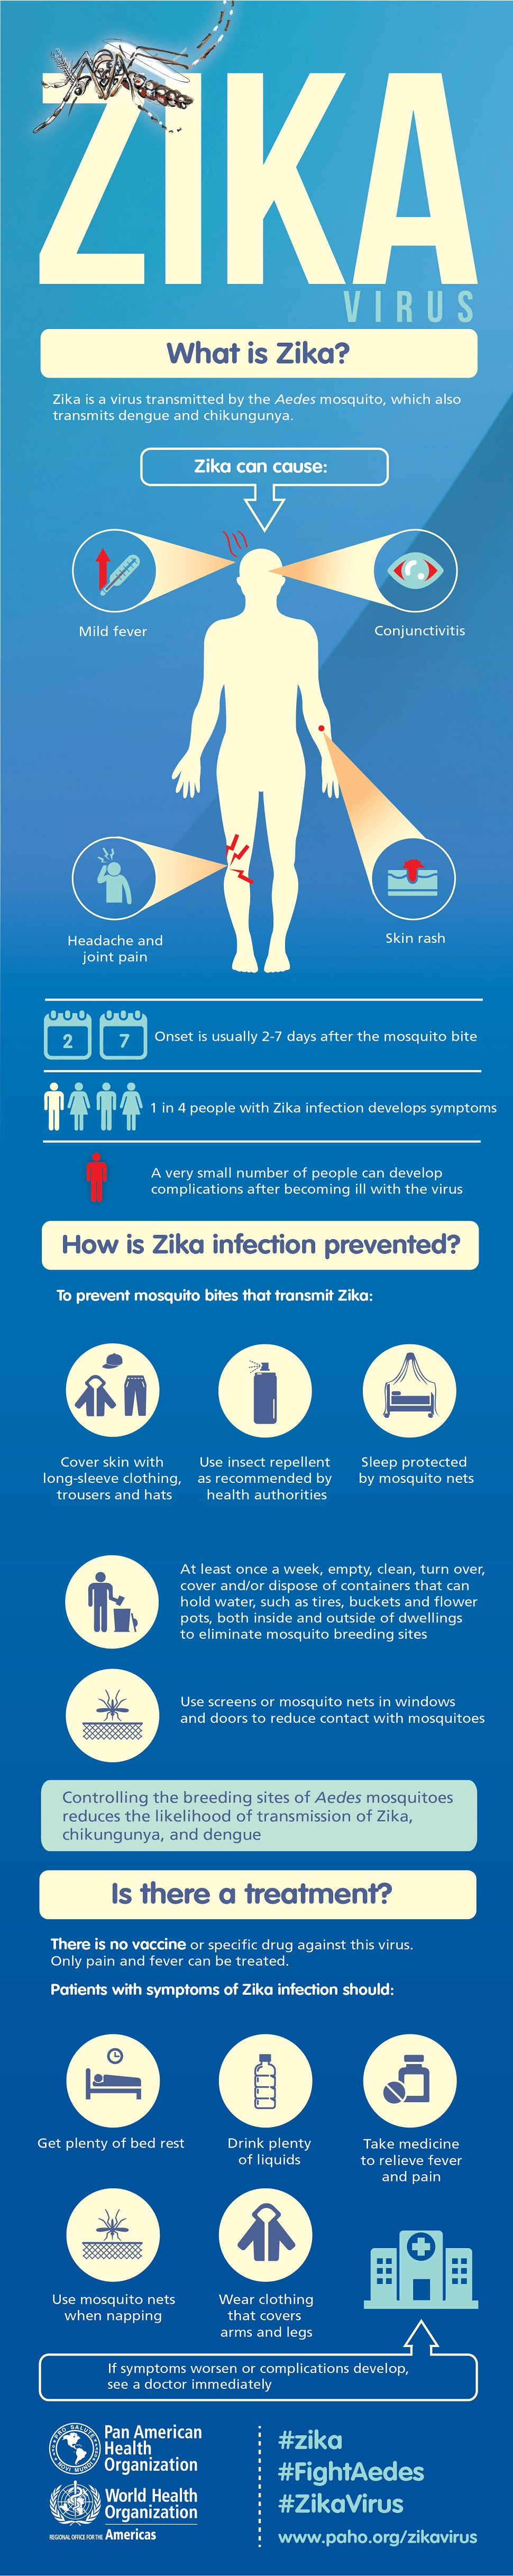 Infographic from Pan American Health organization and the World health Organization is titled Zika virus, with an illustration of a mosquito at the top. As you scroll down, the text reads: What is Zika? Pika is a virus transmitted by the Aedes mosquito, which also transmits dengue and chikungunya. Pika can cause, as illustrated on a human figure, Mild fever, conjunctivitis, headache and joint pain, skin rash. Calendar icons illustrate that Onset is usually 2 to 7 days after the mosquito bite. Human figures illustrate that 1 in 4 people with Zika infection develops symptoms. A very small number of people can develop complications after becoming ill with the virus, Larger text reads: How is Zika infection prevented? To prevent mosquitos bites that transmit Zika: Illustrations accompany each section of text that reads: Cover skin with long-sleeve clothing , trousers and hats. Use insect repellent as recommended by health authorities. Sleep protected by mosquito nets. At least once a week, empty, clean, turnover. cover and/or dispose of containers that can hold water, such as tires, buckets and flower pots, both inside and outside of dwellings to eliminate mosquito breeding sites. Use screens or mosquito nets in windows and doors to reduce contact with mosquitoes. Controlling the breeding sites of Aedes mosquitoes reduces the likelihood of transmission of Zika, Chikungunya and Dengue. Scrolling further shows large text that reads: Is there a treatment? There is no vaccine or specific drug against this virus. Only pain and fever can be treated. Patients with symptoms of Zika infection should: (graphical icons accompany text) Get plenty of bed rest; drink plenty of liquids; take medicine to relieve fever and pain; use mosquito nets when napping; swear clothing that covers arms and legs. If symptoms worsen or complications develop, see a doctor immediately. Logos of the Pan American Health organization and World health Organization flank hostages such as #Zika, @FightAedes and #ZikaVirus. You can link to the Pahos.org page by clicking this graphic.